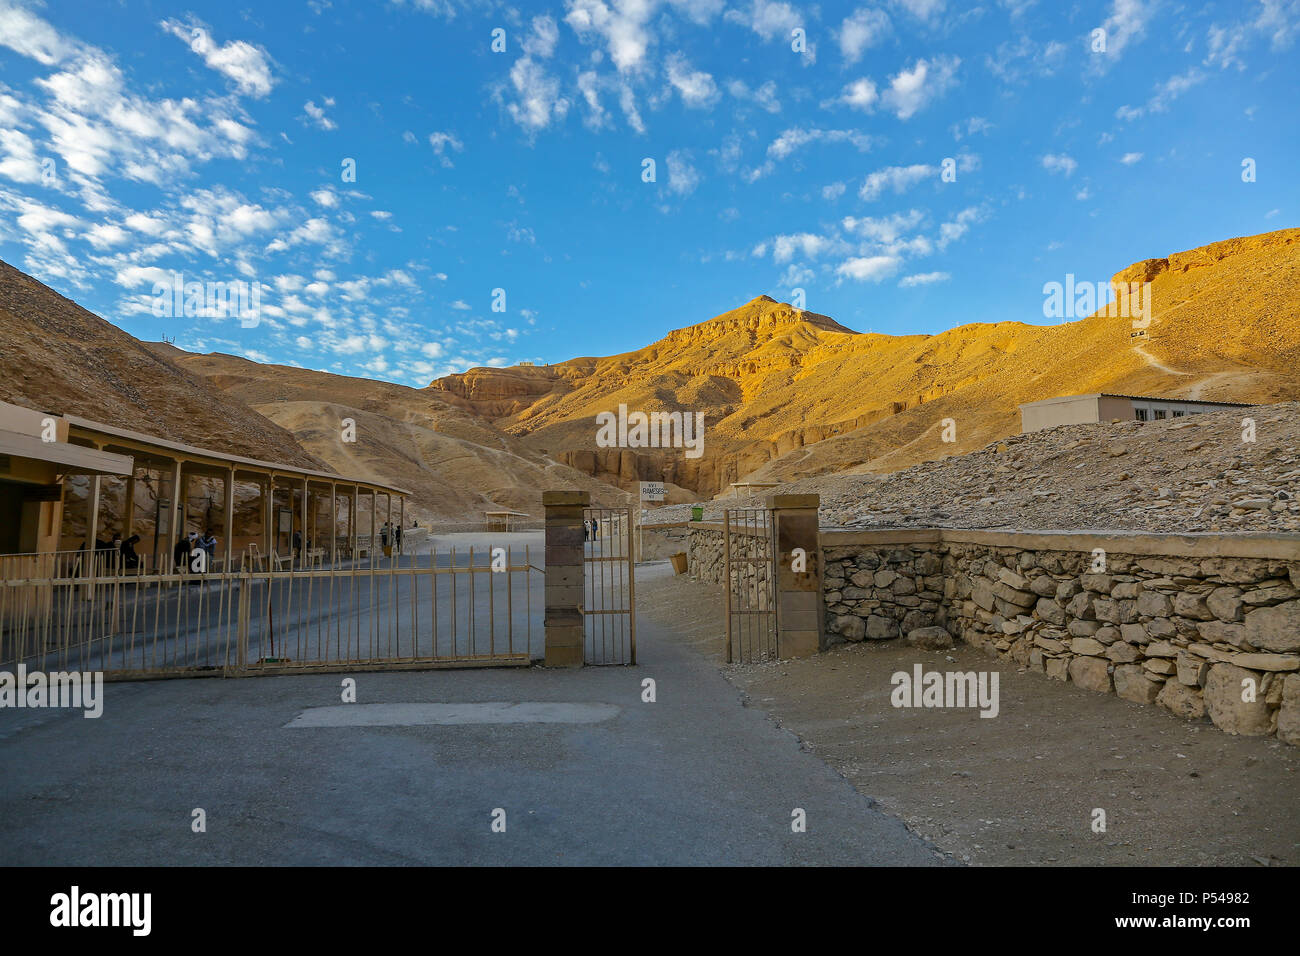 Early morning before the crowds at the entrance to the Valley of the Kings,Thebes, Luxor, Egypt, Africa - Stock Image